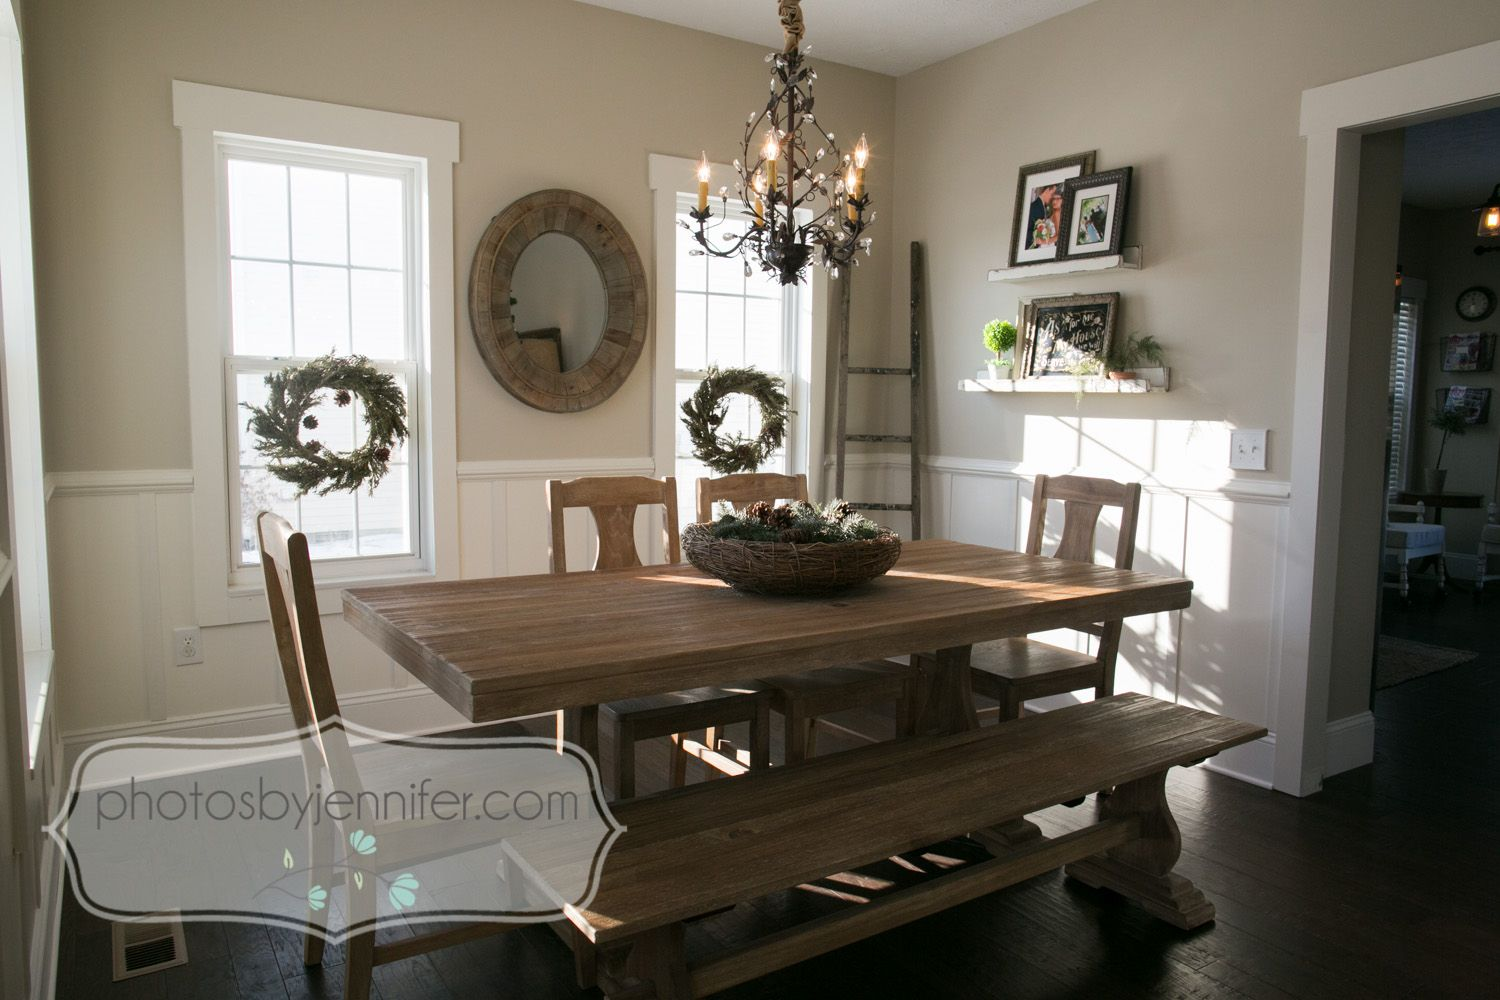 Diy board and batten diy shelves old farm ladder farmhouse table rustic dining room chandelier from home depot color on wall oatbran by valspar